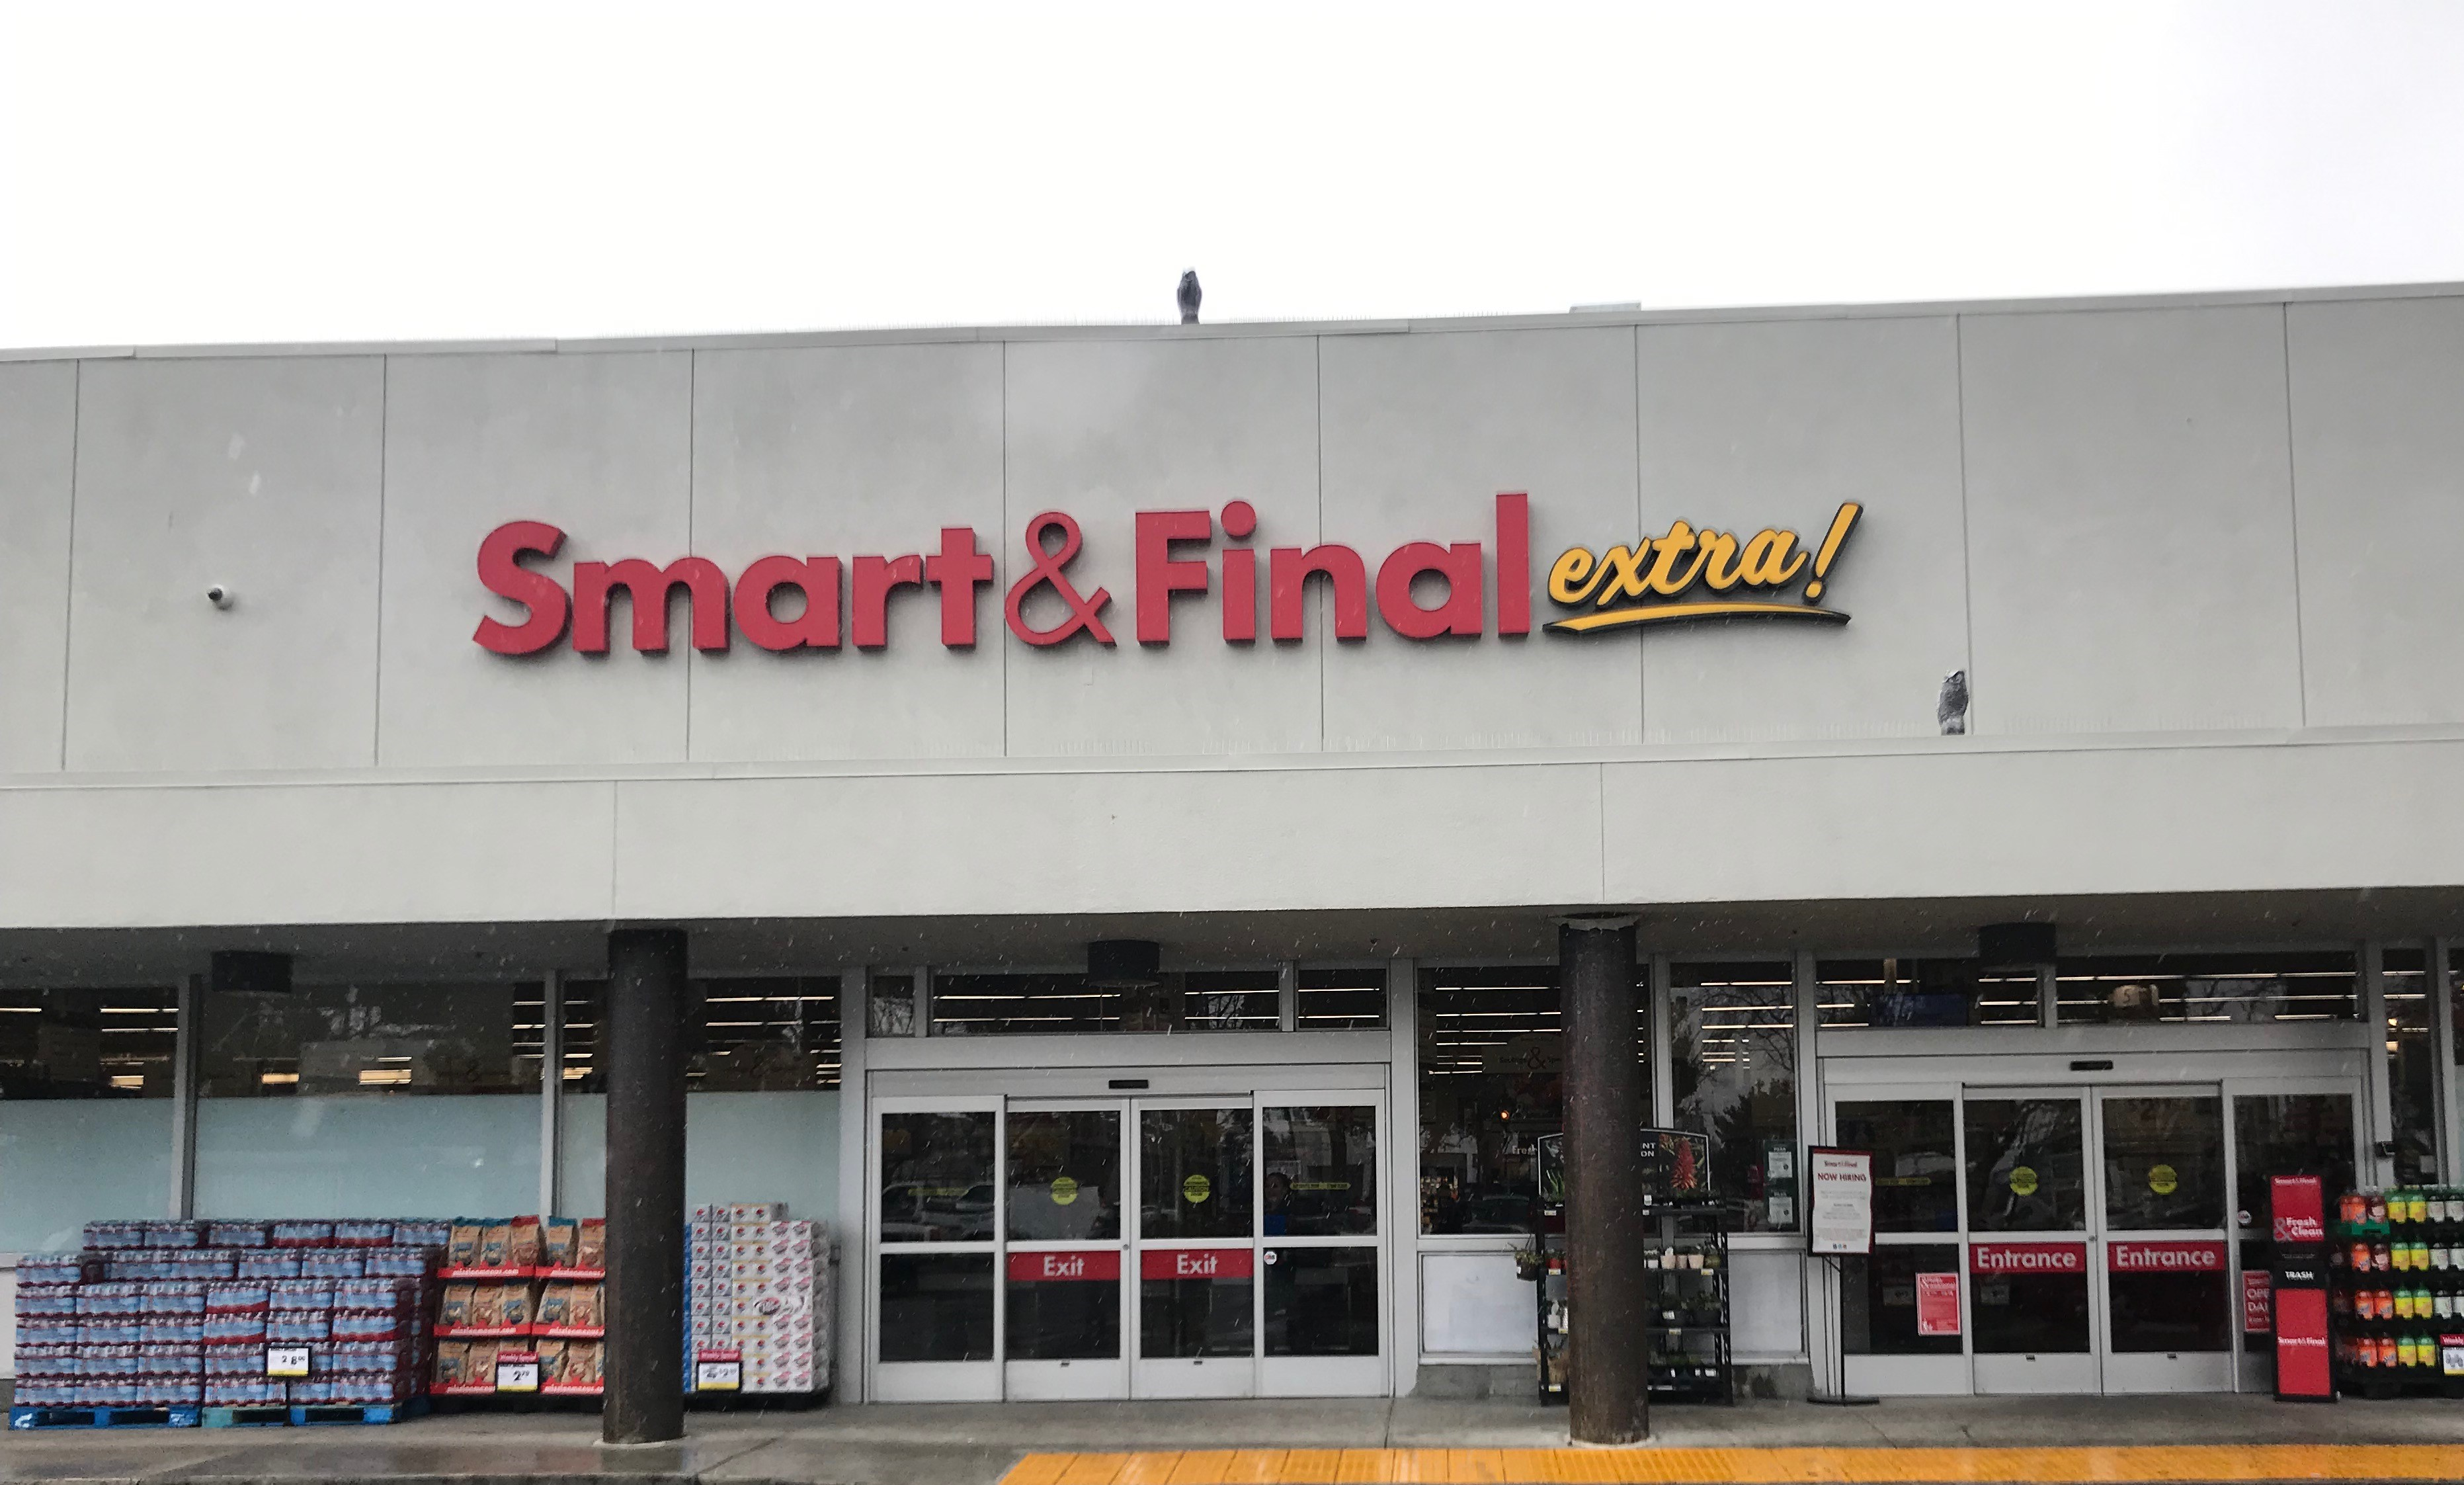 Smart & Final Store Front - Grocery Store in Mountain View, CA